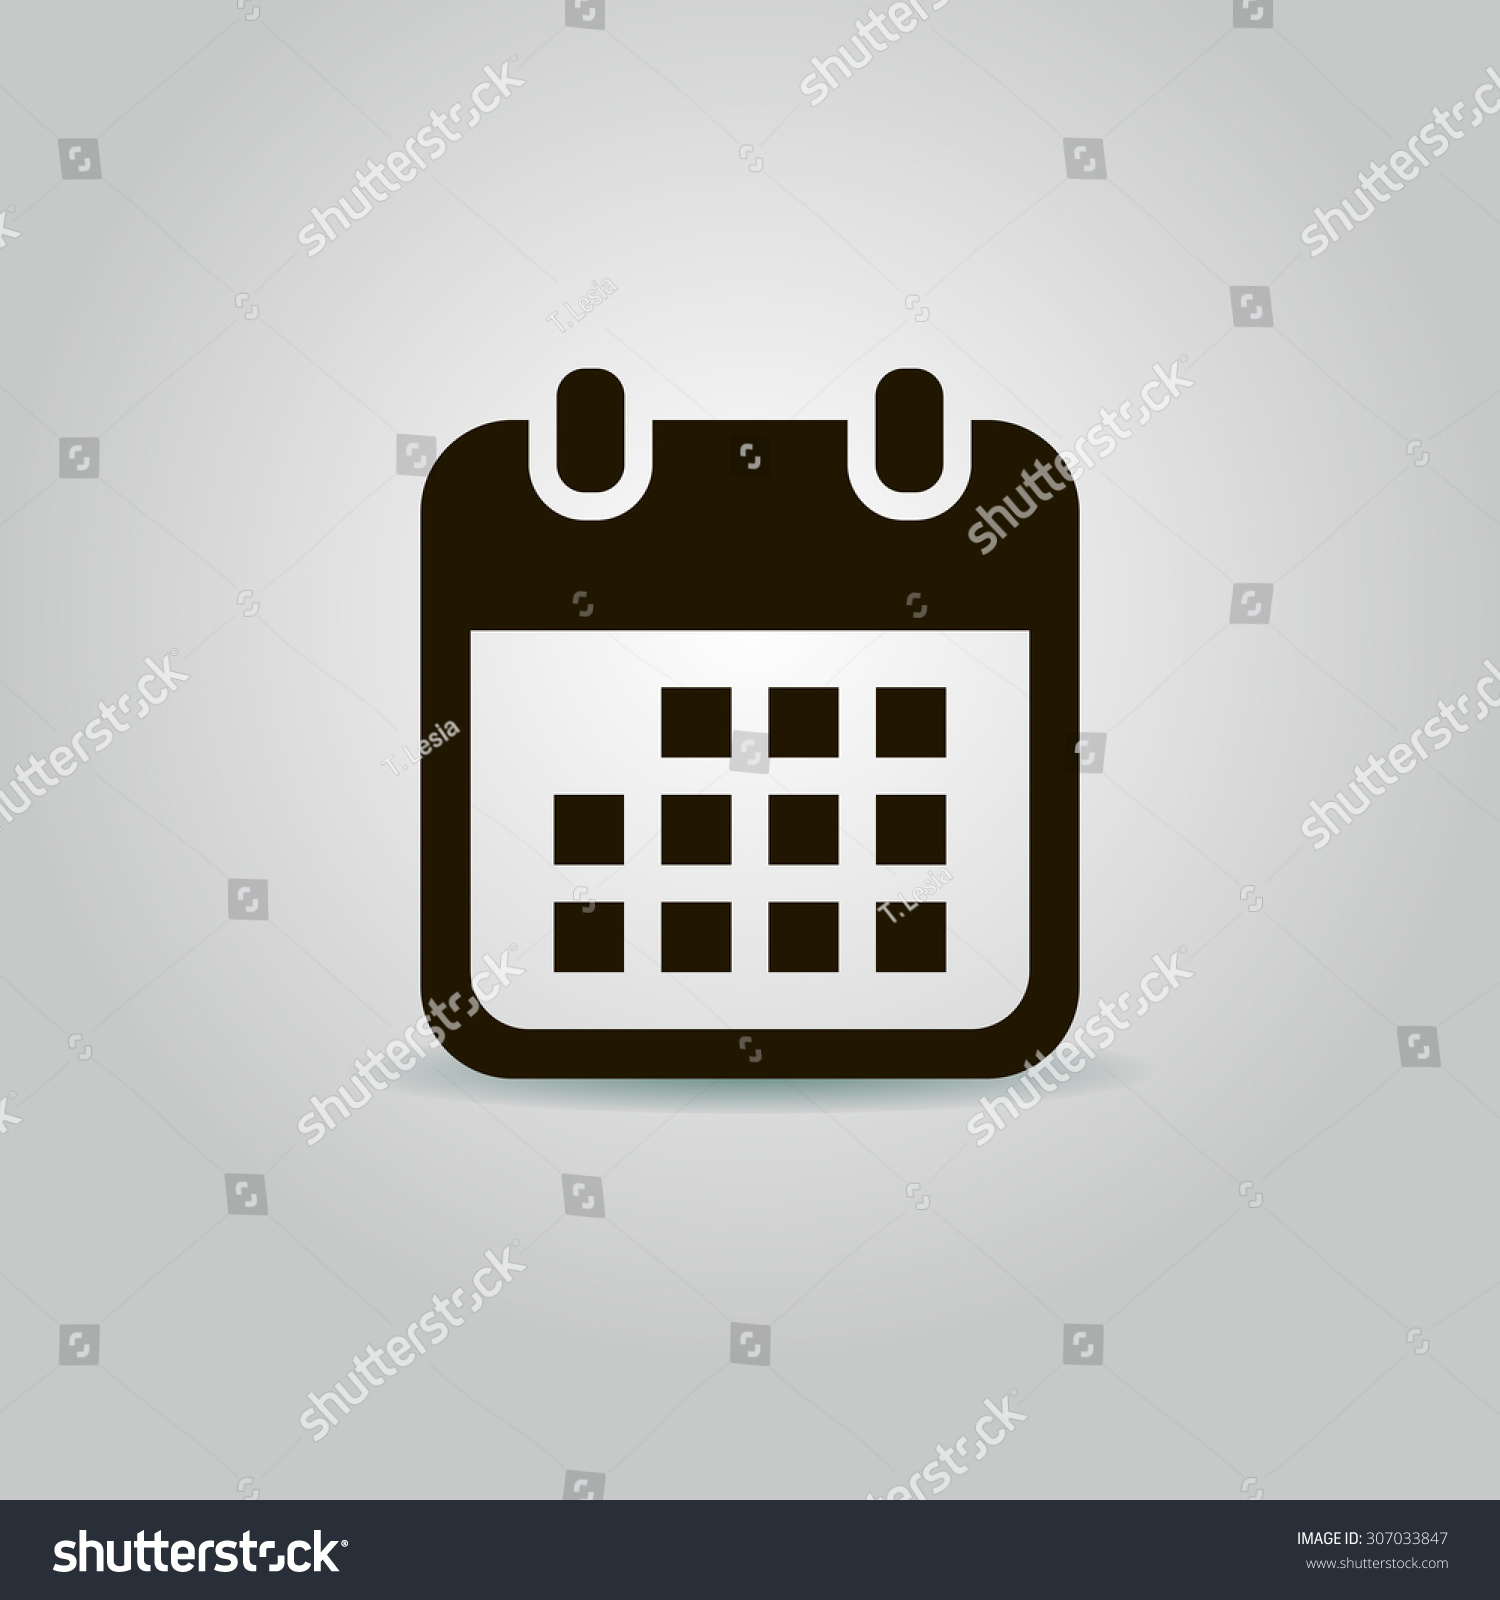 Calendar Illustration Vector : Calendar icon vector illustration stock